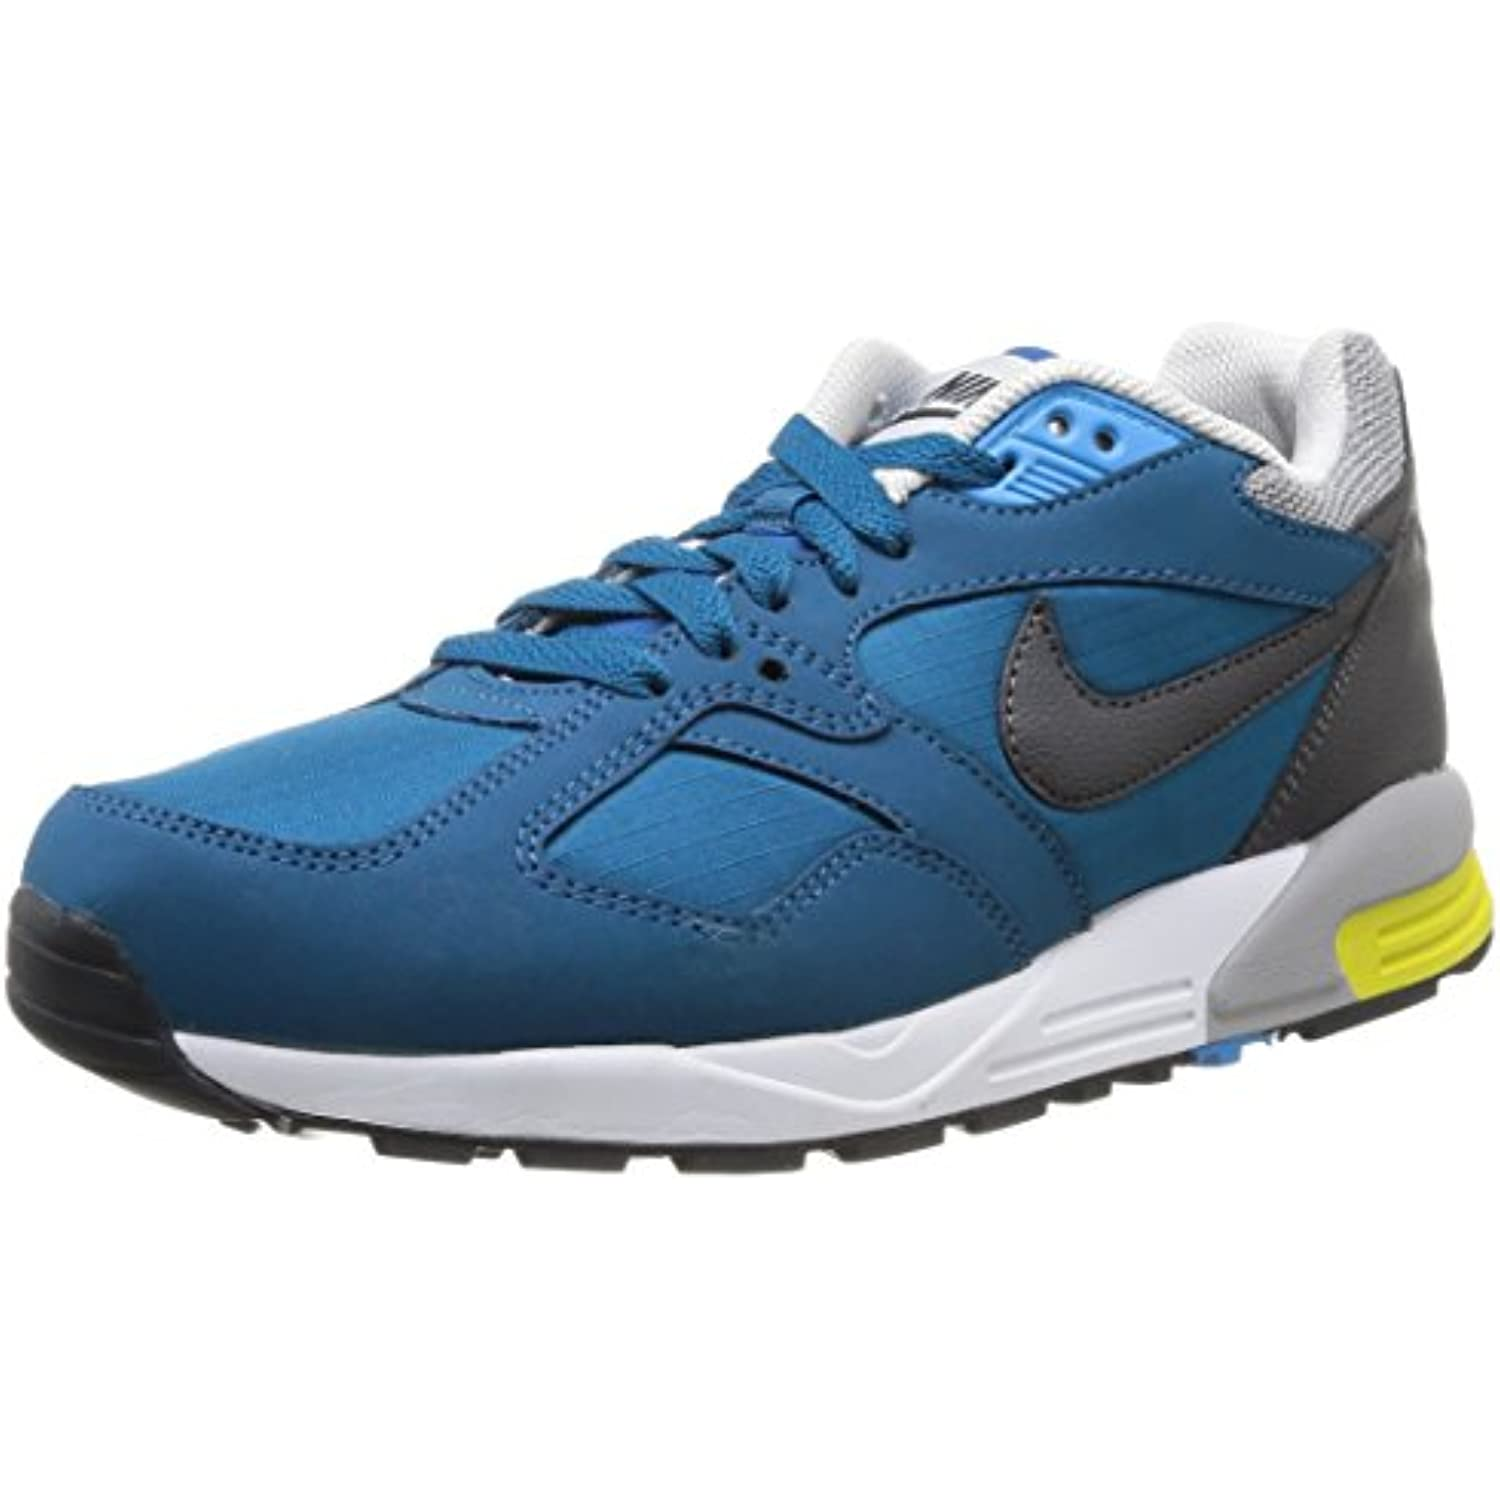 super popular 917fa 6a659 NIKE NIKE NIKE Air Base II, Chaussures de sport homme B00I3Z7EUS - 6e0fed